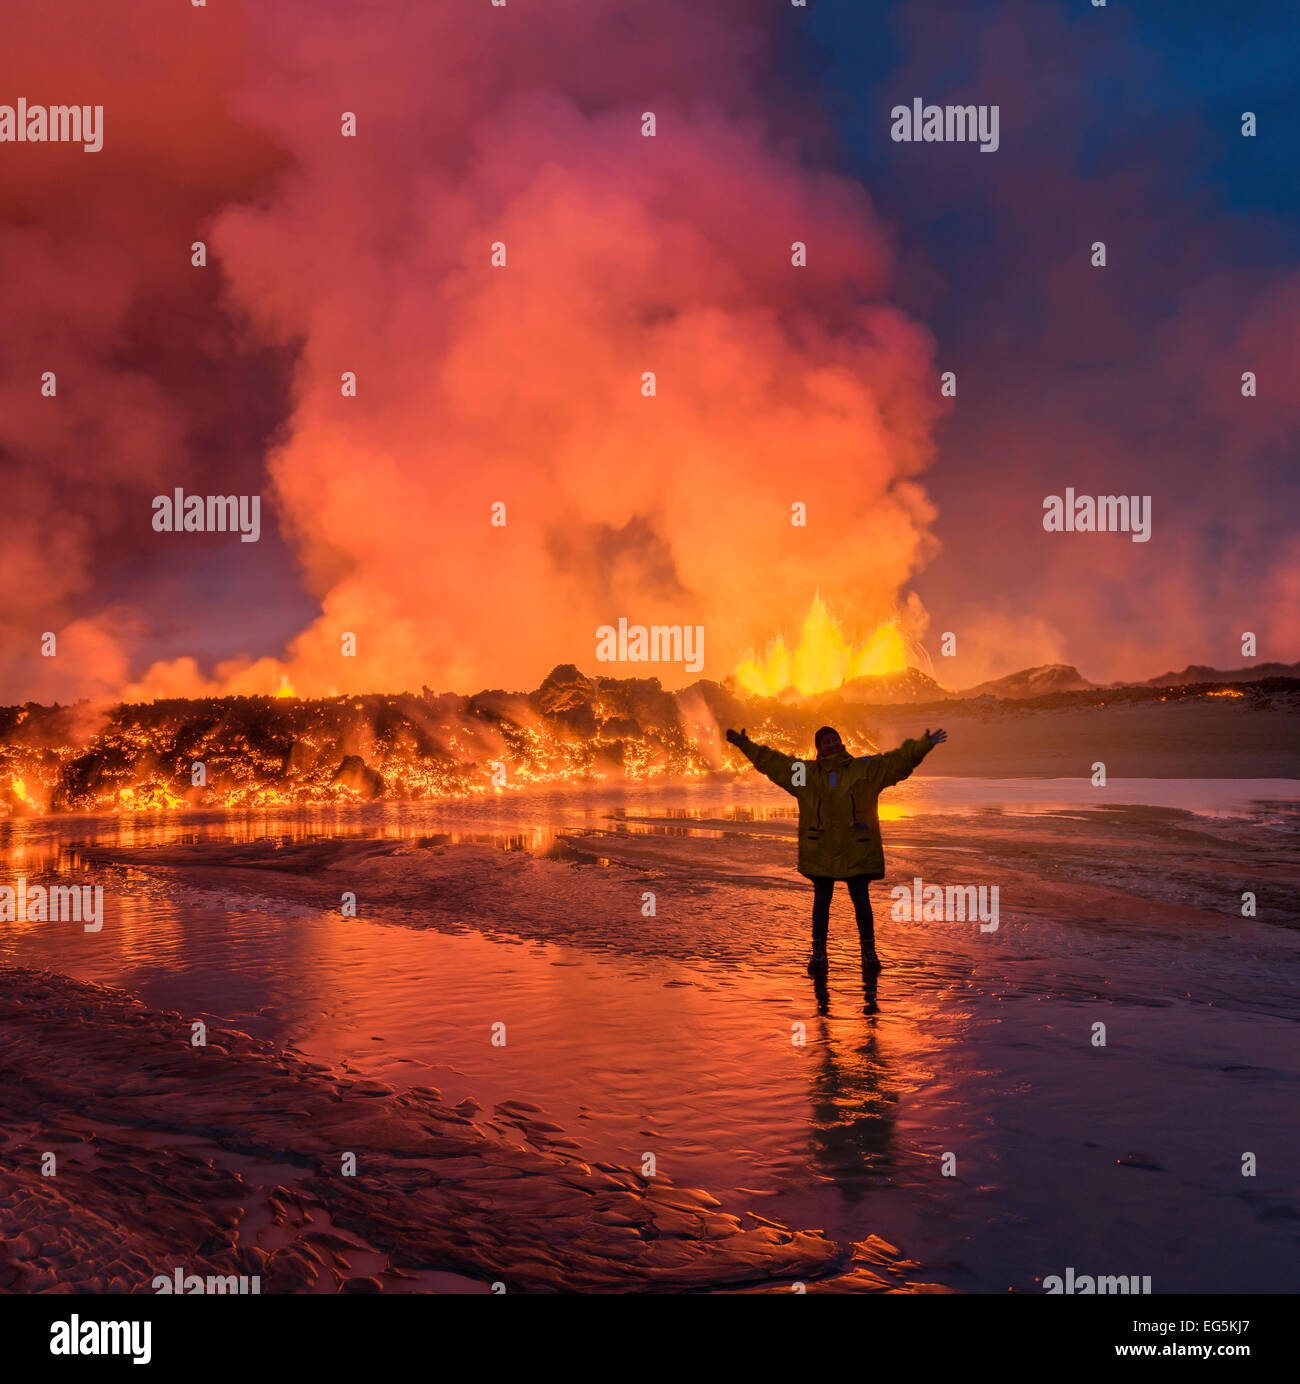 Woman standing by glowing lava at the eruption site,  Holuhraun Fissure, Bardarbunga Volcano, Iceland - Stock Image